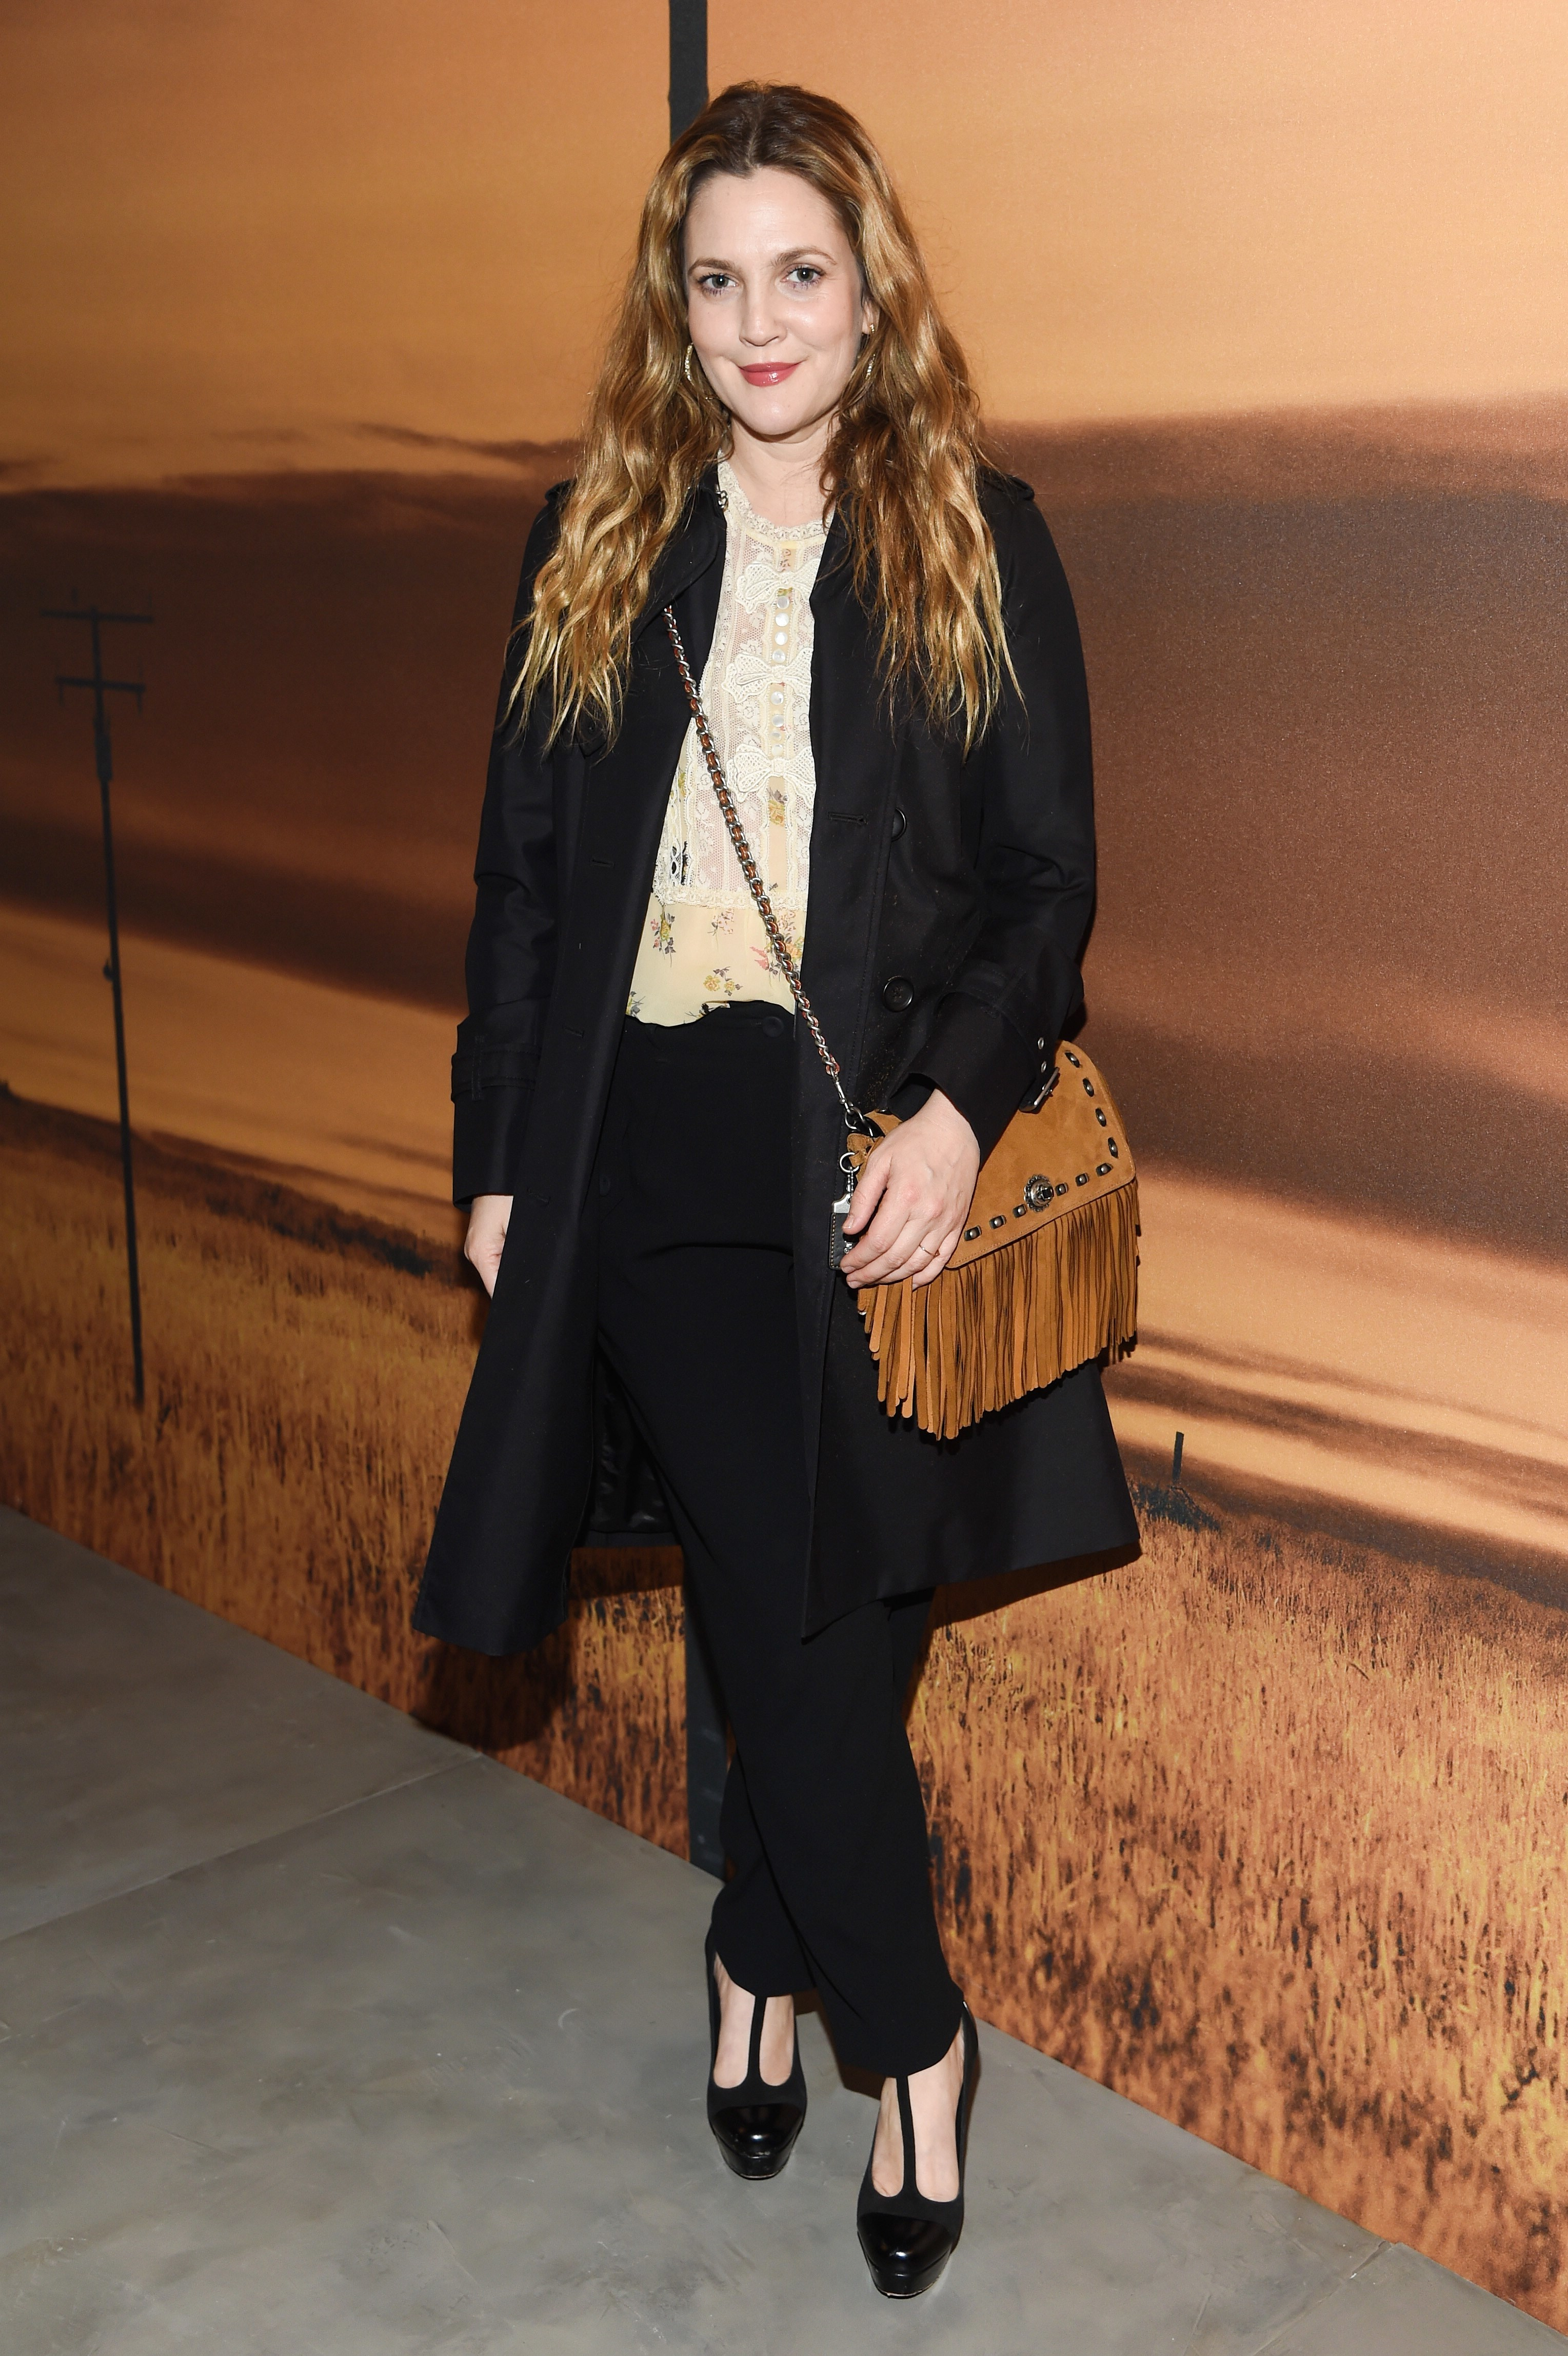 hutchinson dating Watch video drew barrymore is dating david hutchinson following her divorce from will kopelman, us weekly can confirm barrymore, 42, and her new beau actually have a work connection hutchinson is the.